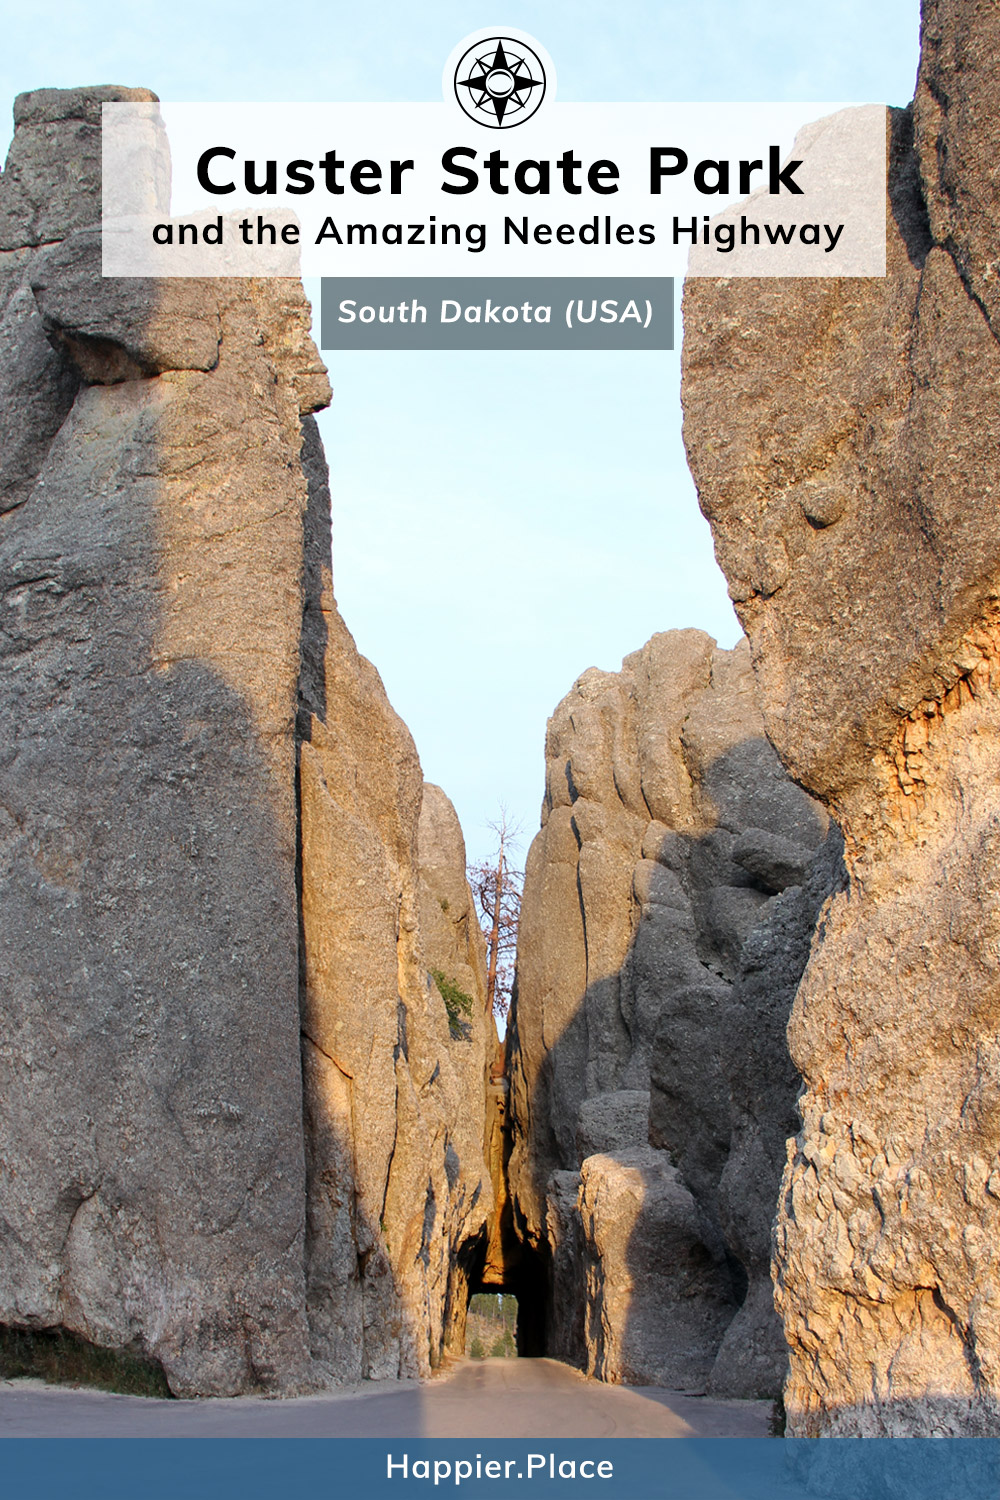 Needles Eye Tunnel of the Amazing Needles Highway in Custer State Park, South Dakota, USA. #outdoorguide #travelguide #outdoors #HappierPlace #travel